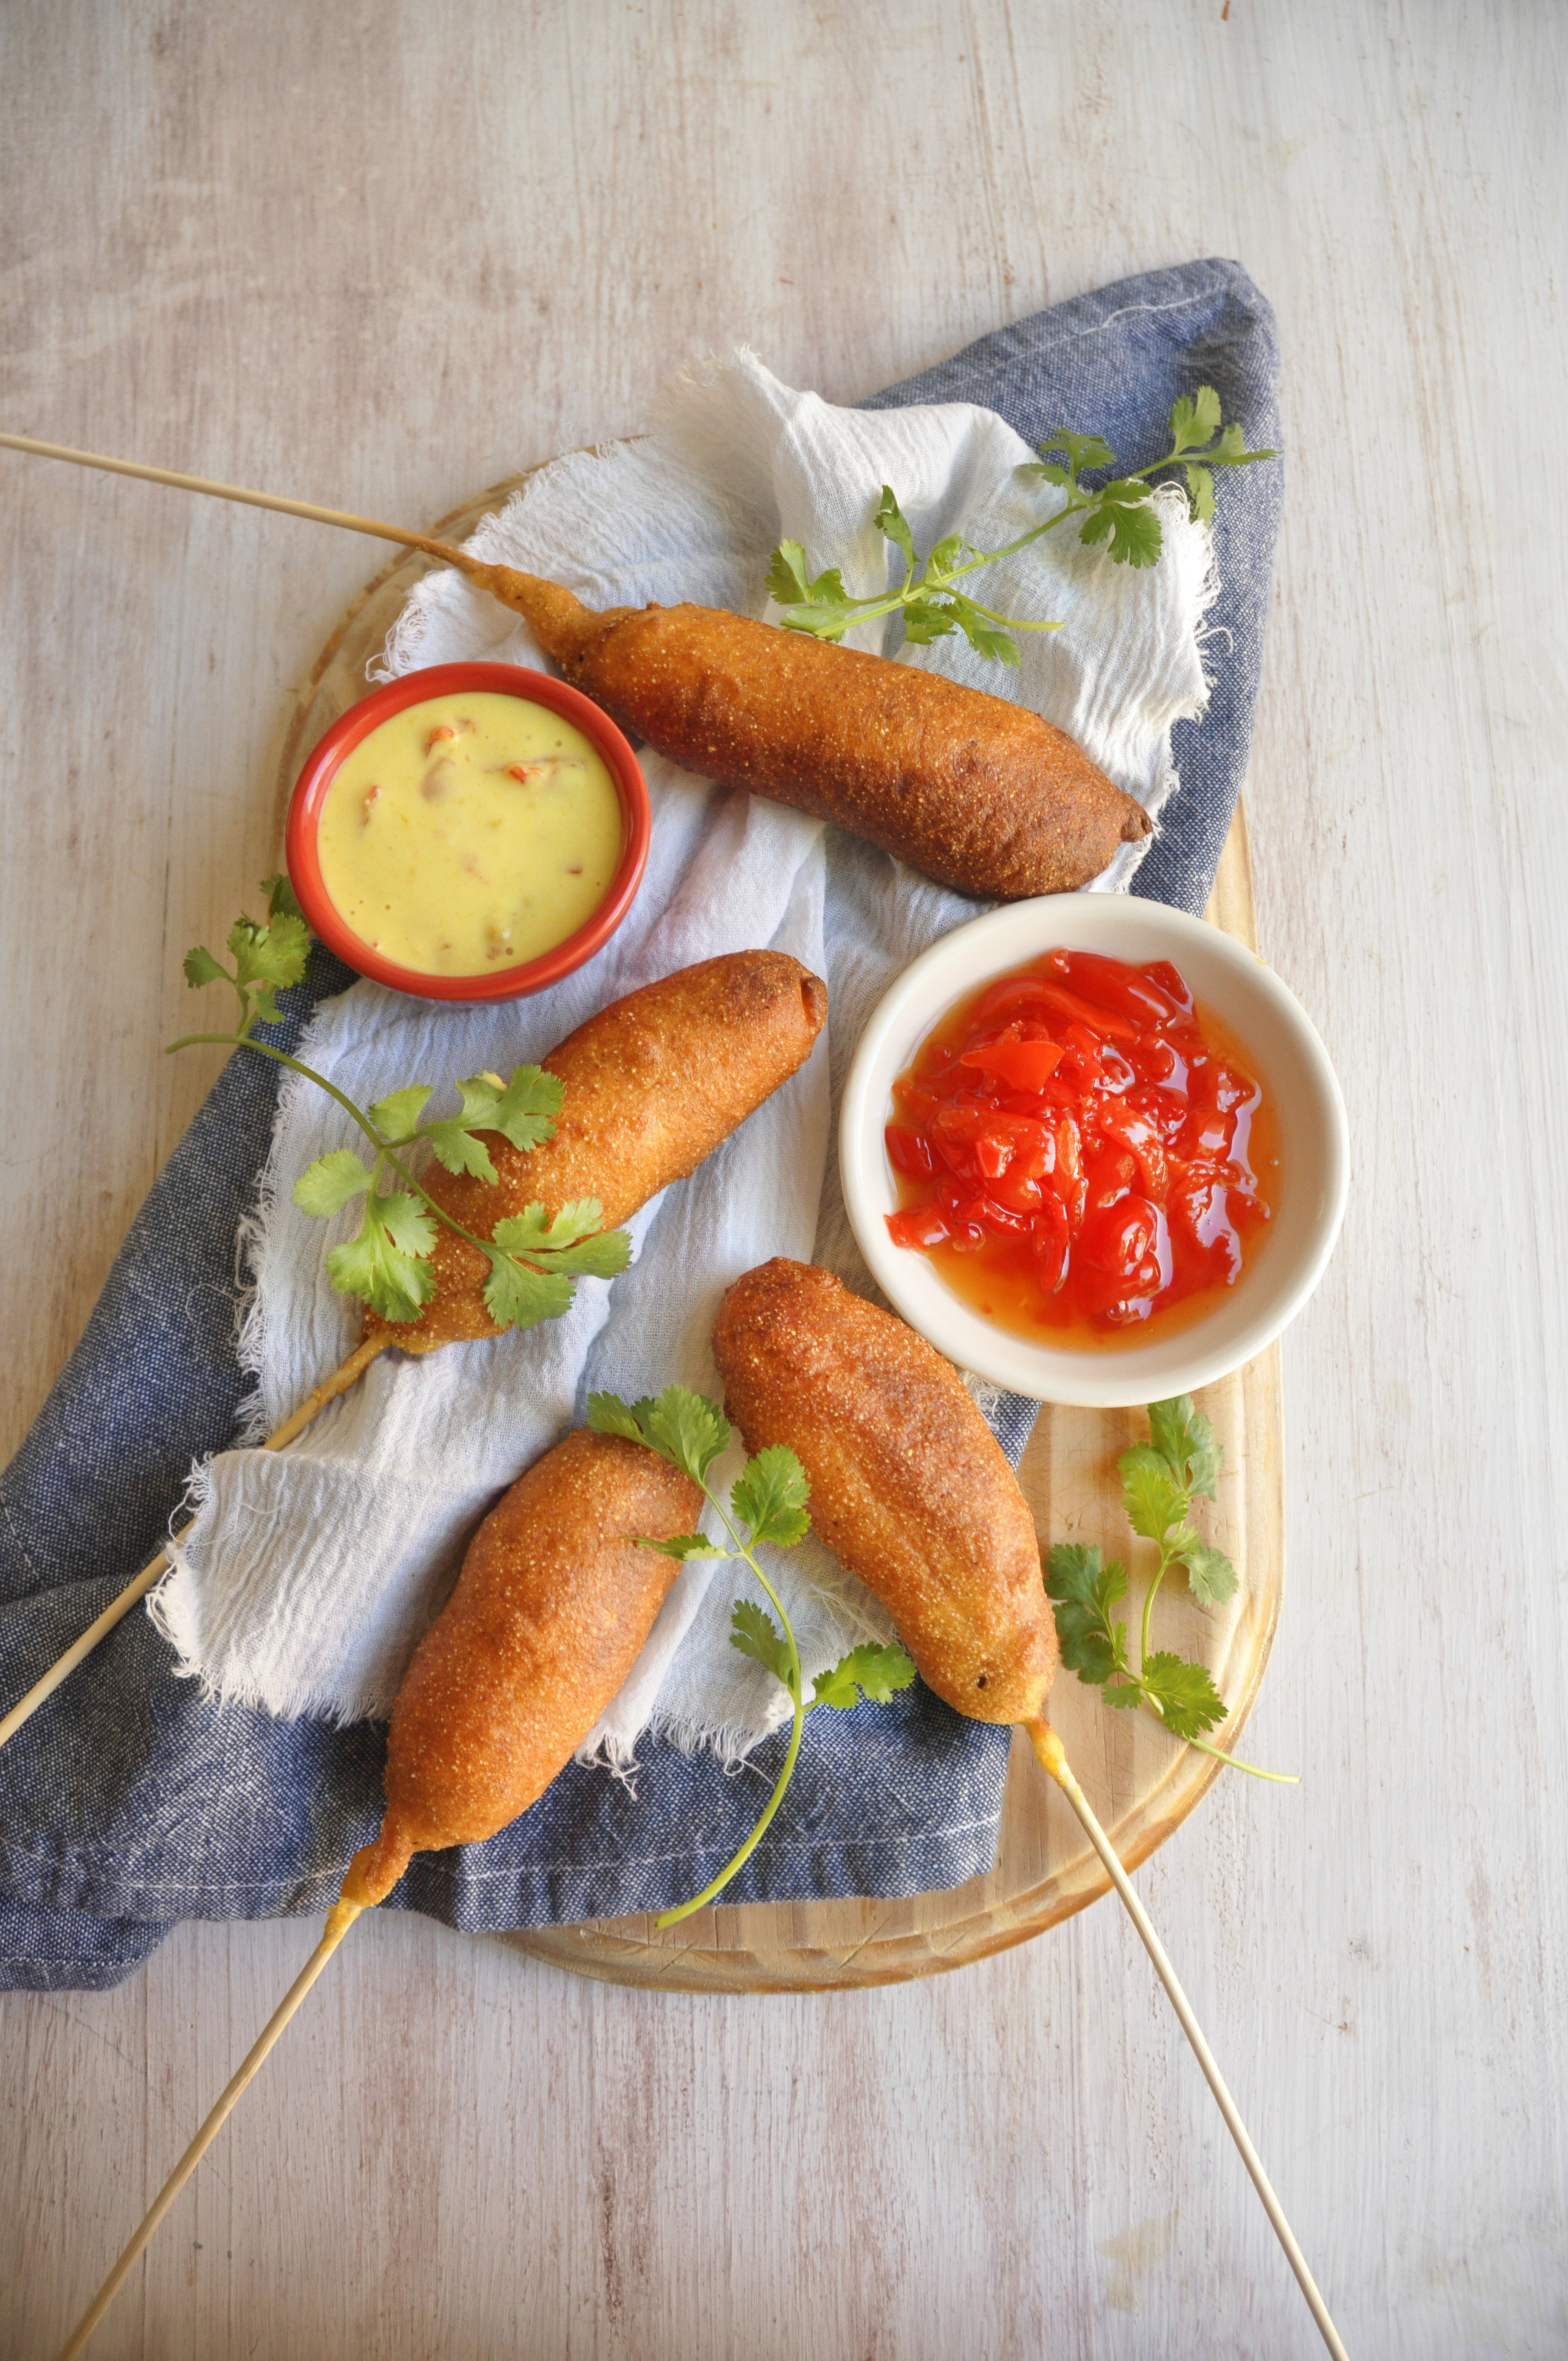 Spicy Corn Dogs